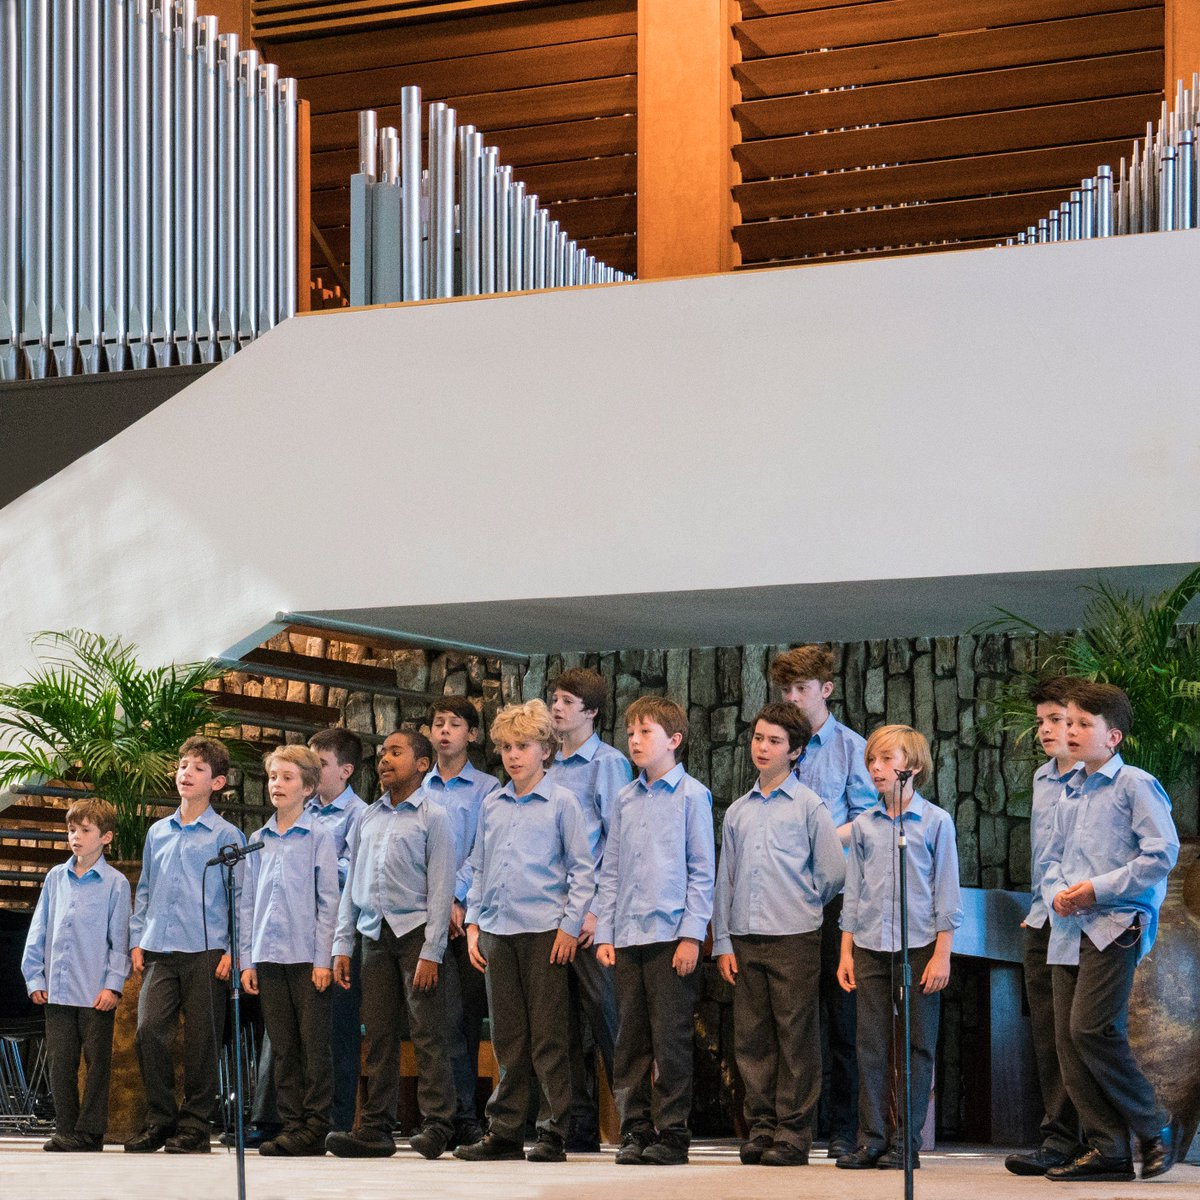 Sound check before @officialLibera performance at Christ Cathedral in Garden Grove, #California. July 28, 2017.  #libera #uslibera #liberaboyschoir #boyschoir #choir #choirboys #choirmusic #charity #newagemusic #childrenschoir #ChristCathedral #GardenGrove #LiberaUSA2017<br>http://pic.twitter.com/P5ALrwco9V